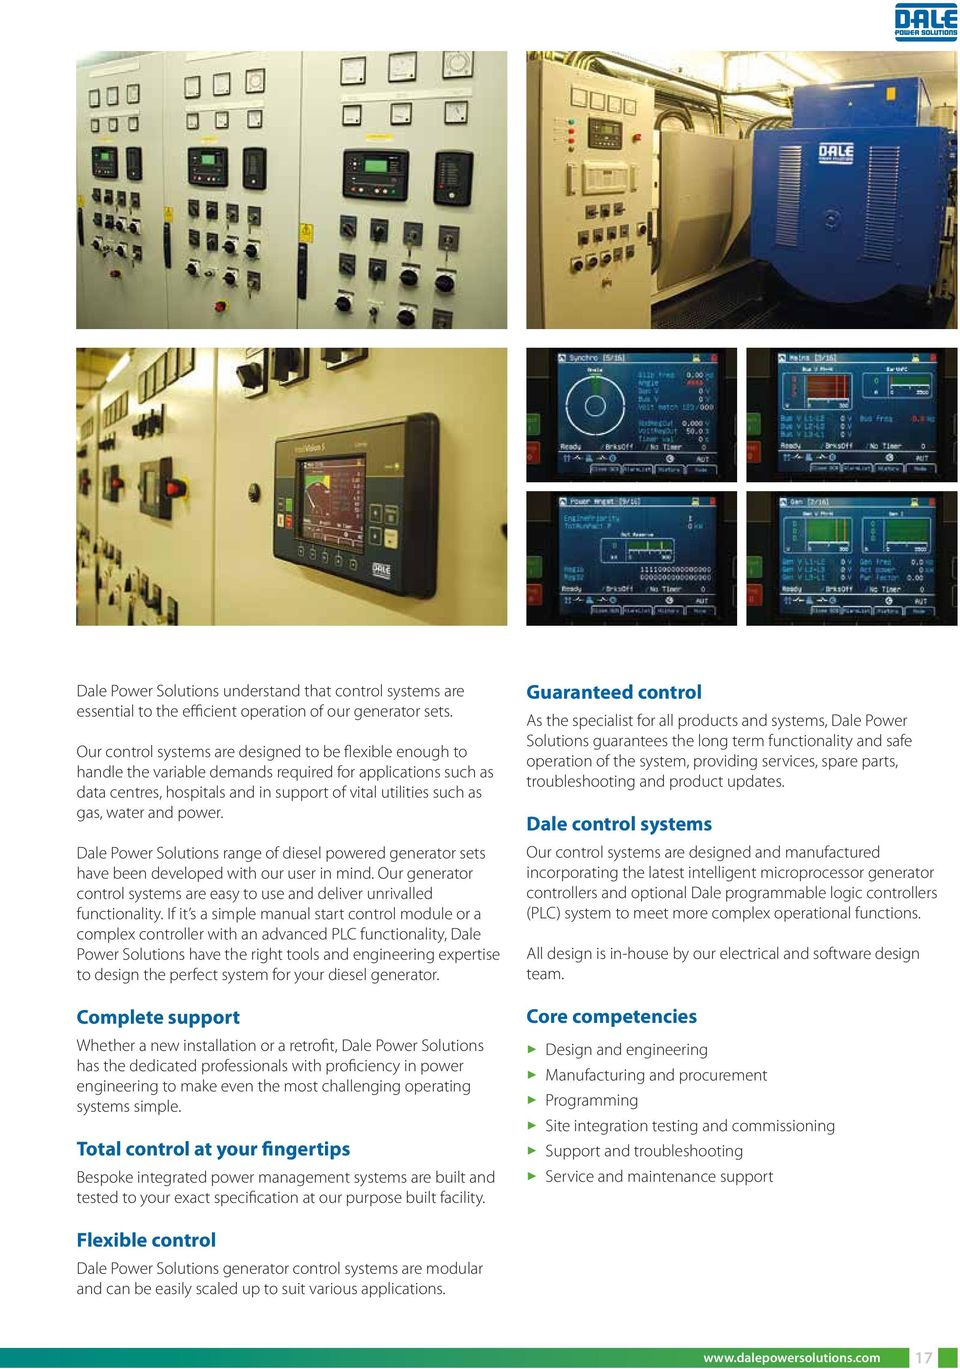 and power. Dale Power Solutions range of diesel powered generator sets have been developed with our user in mind. Our generator control systems are easy to use and deliver unrivalled functionality.